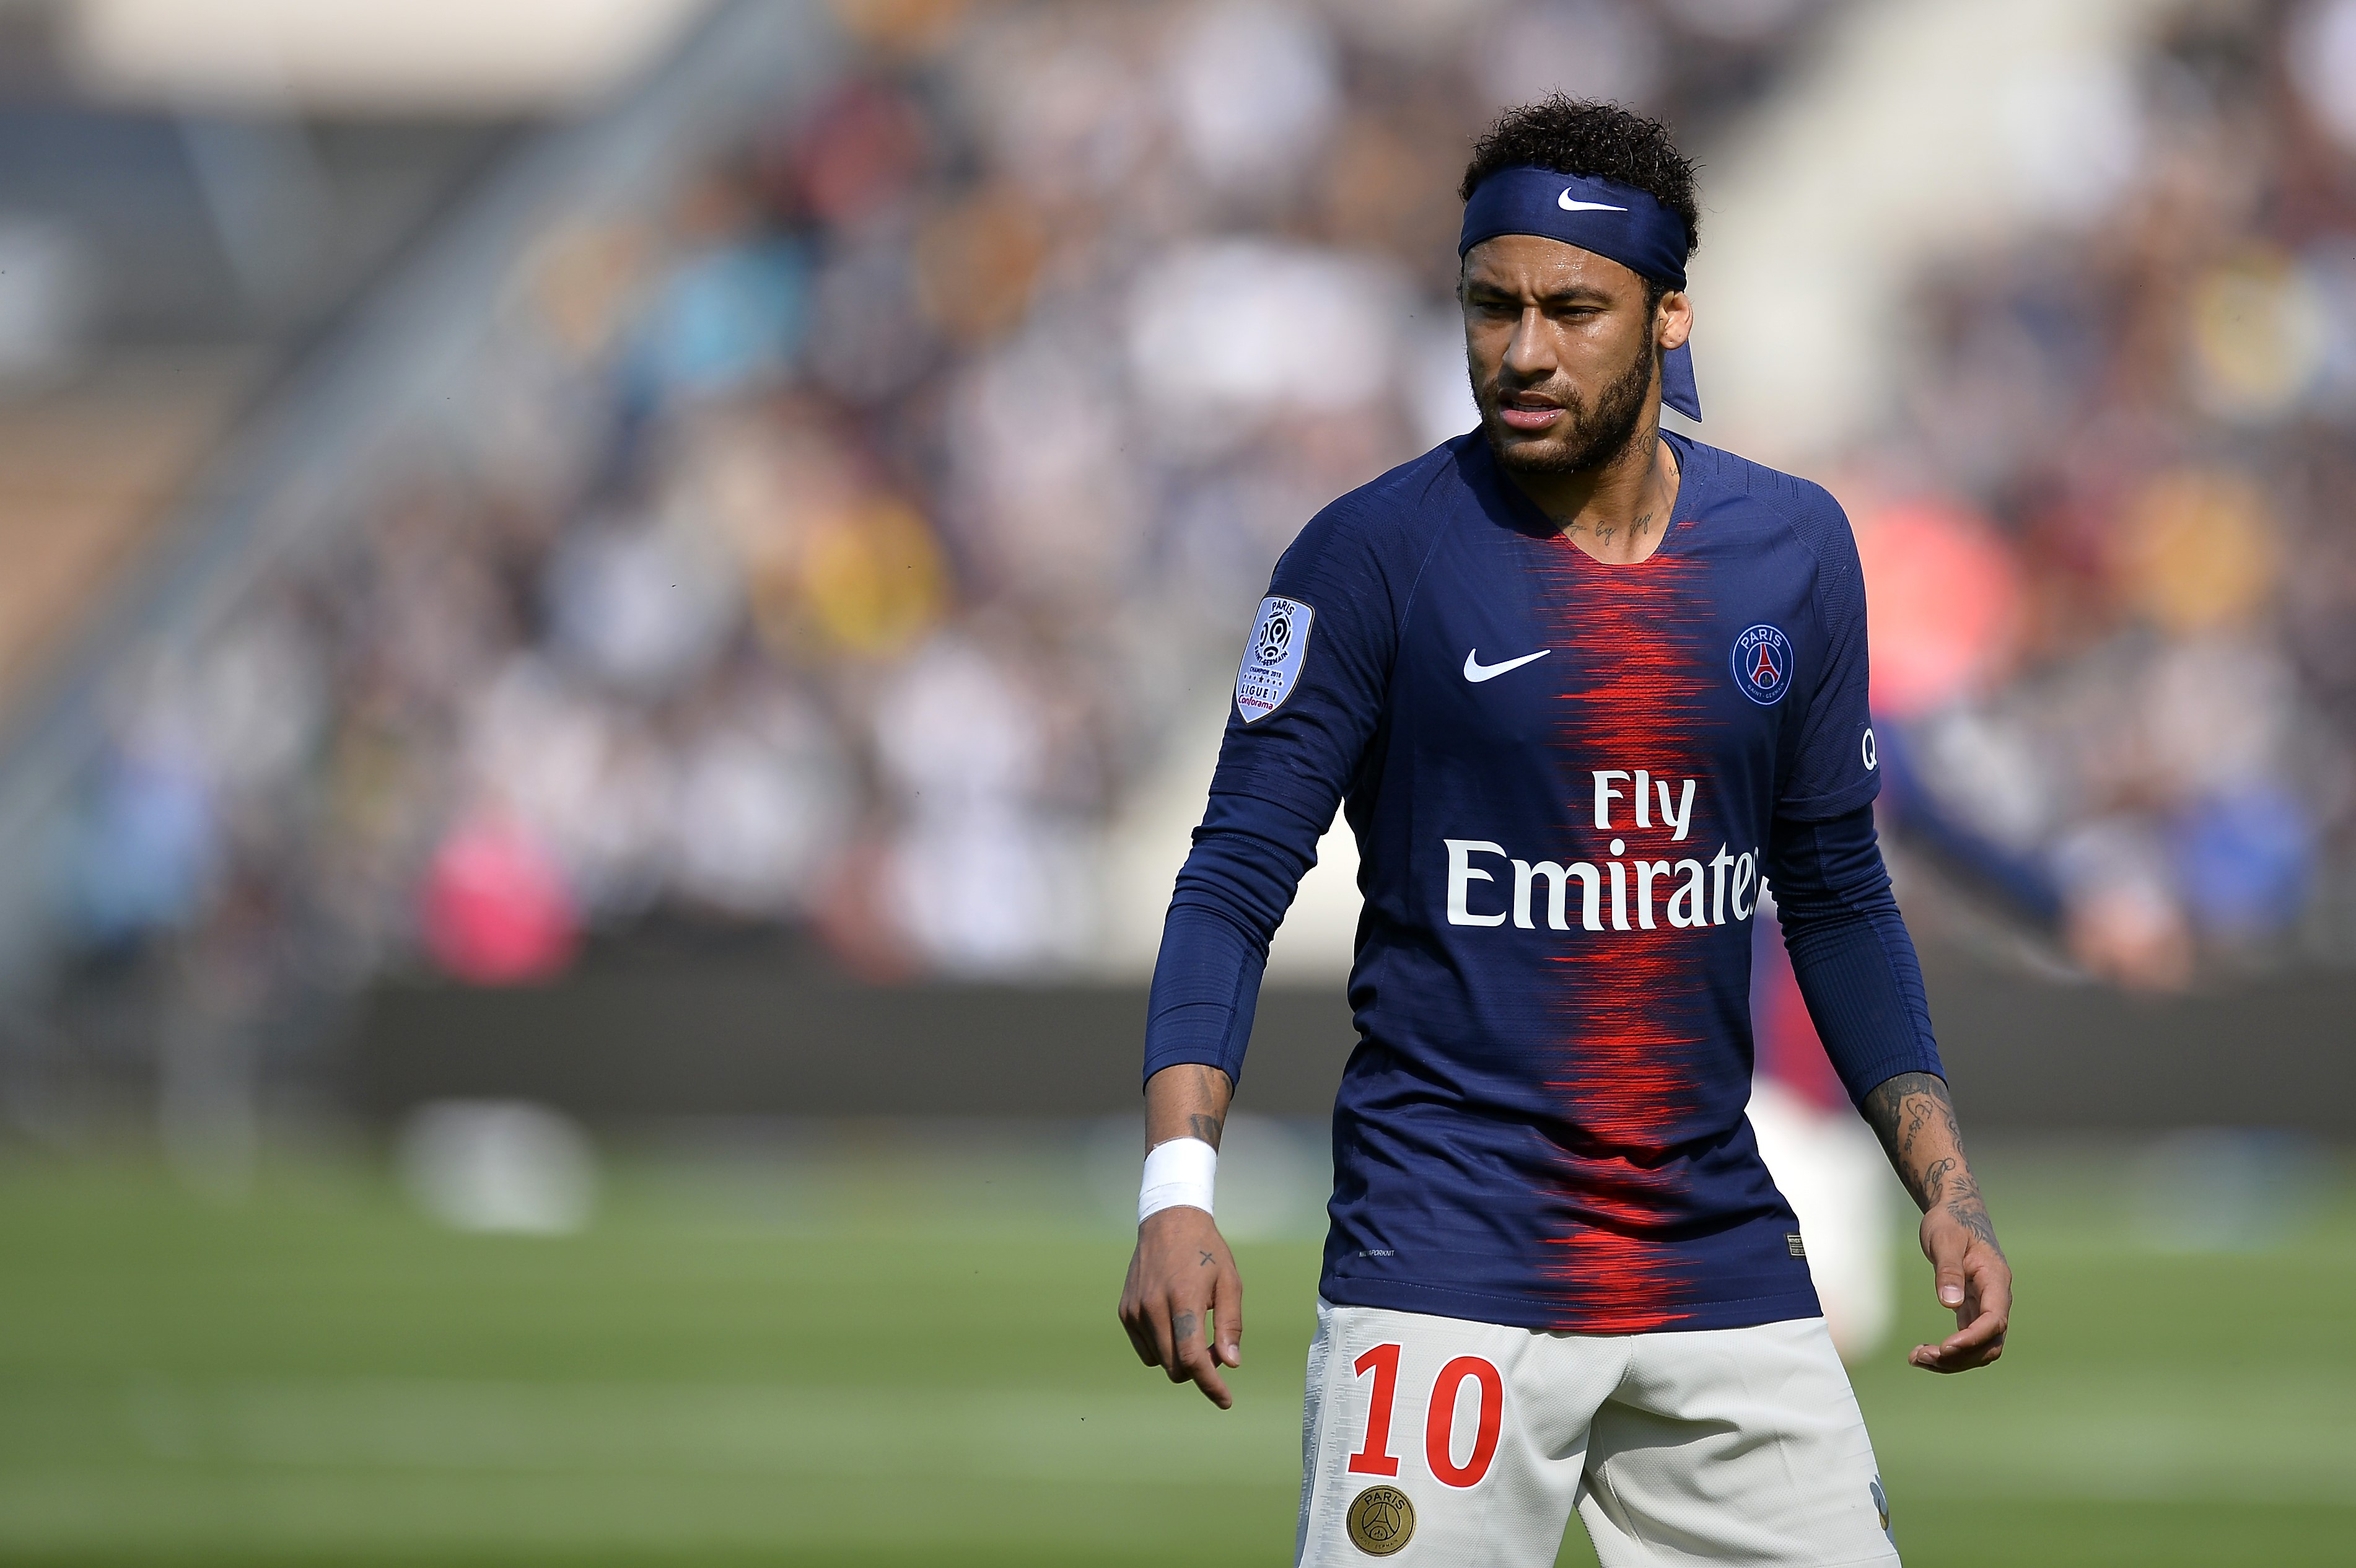 Neymar - Angers-PSG - Ligue 1 2018/2019 - Getty Images